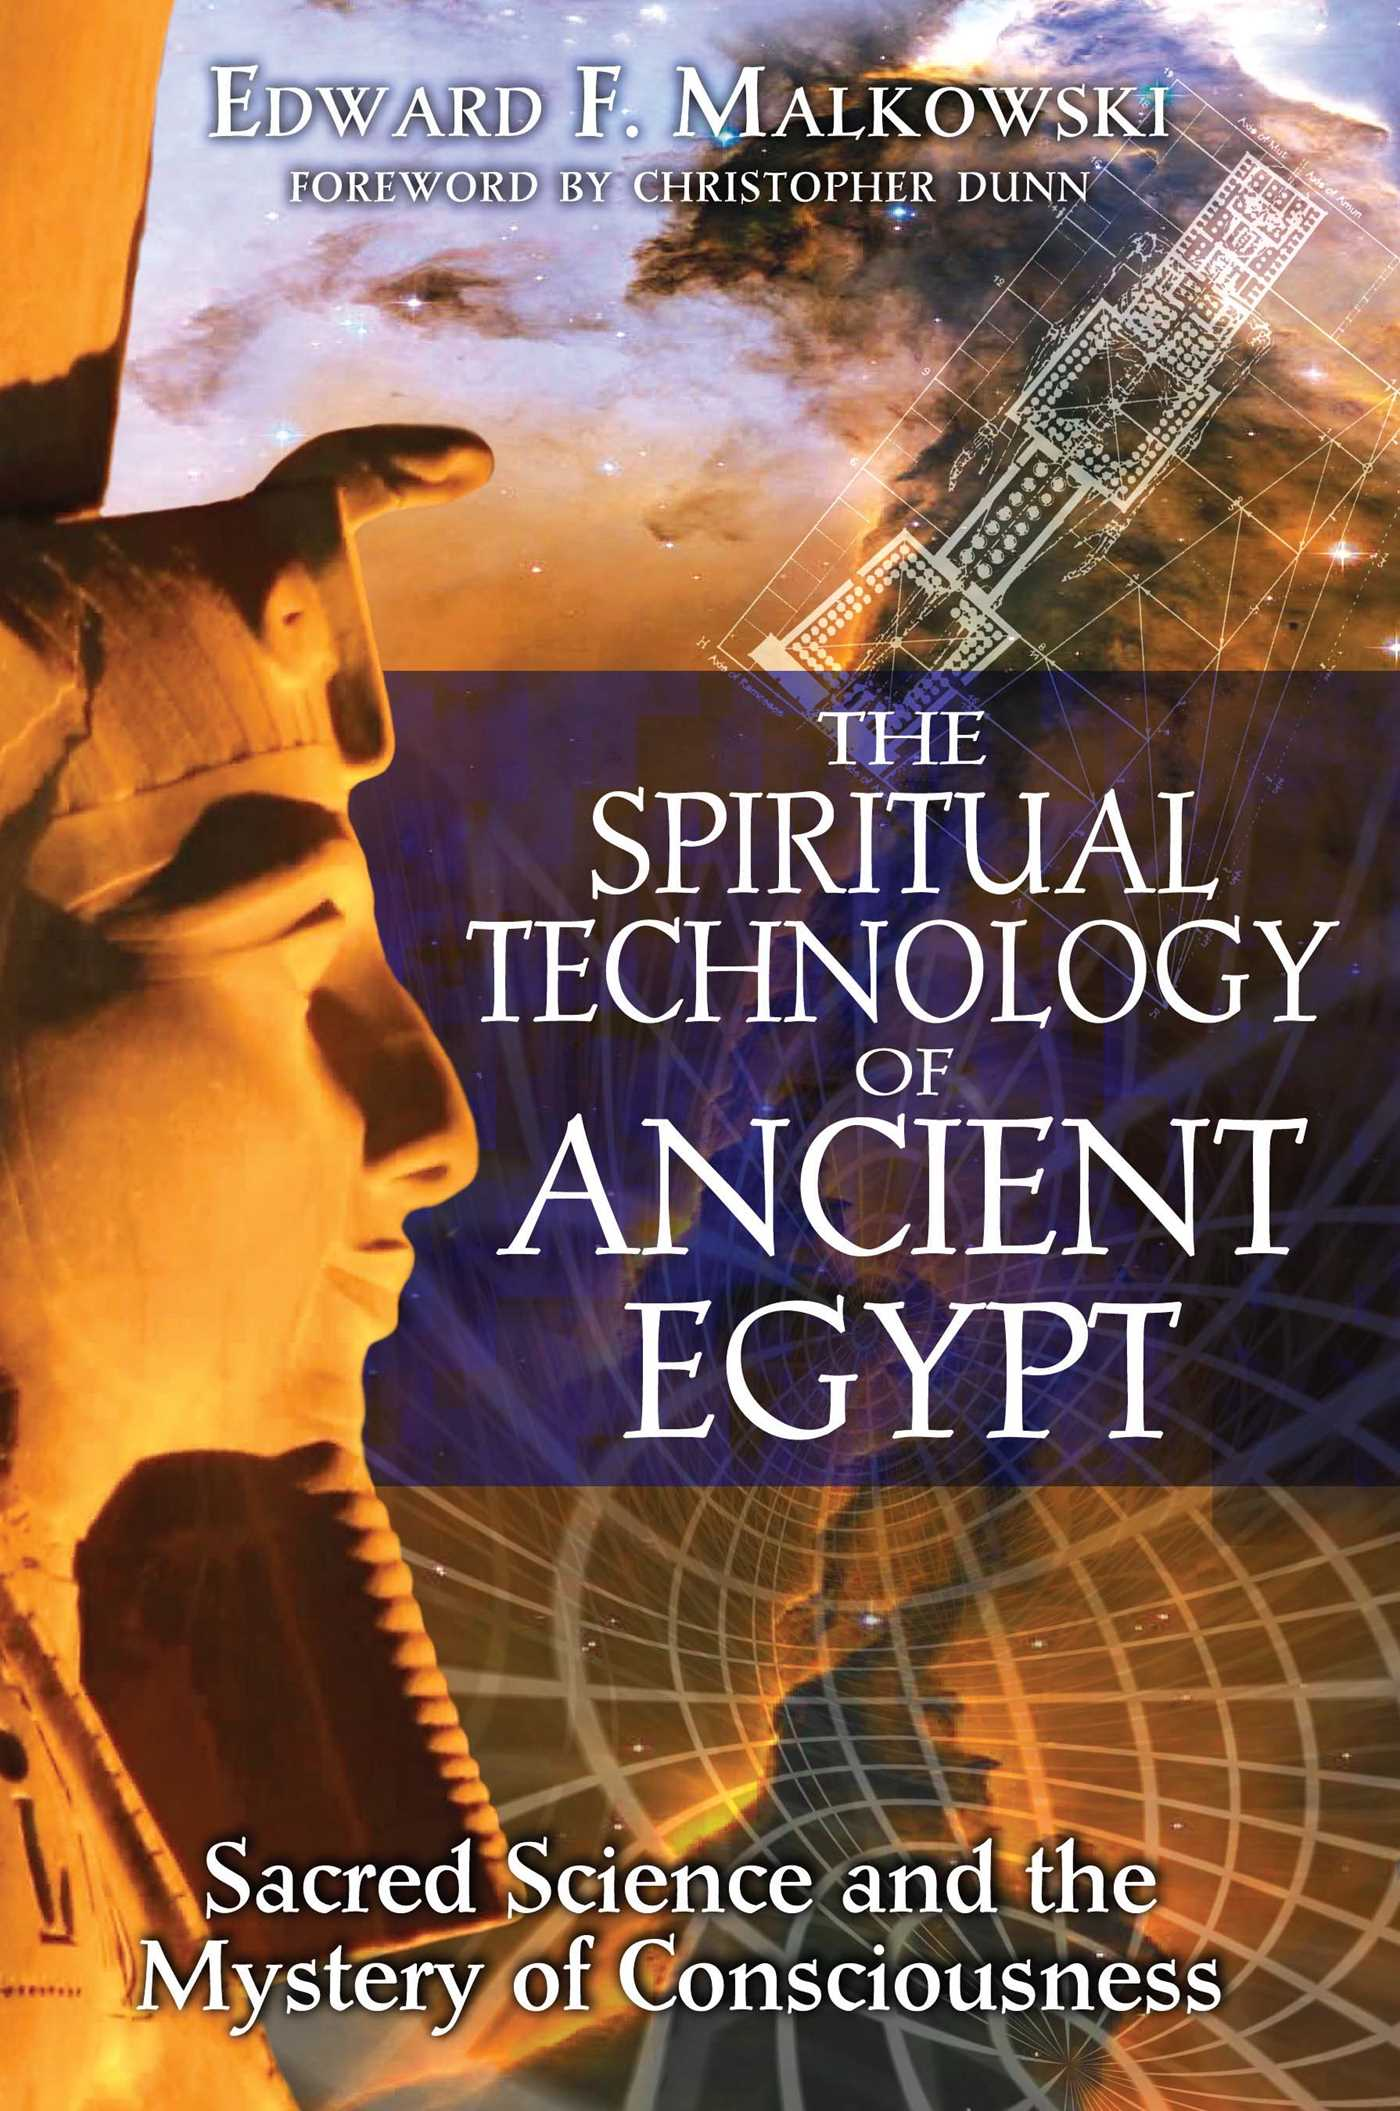 Egypt ancient history on simon schuster available for sale now the spiritual technology of ancient egypt biocorpaavc